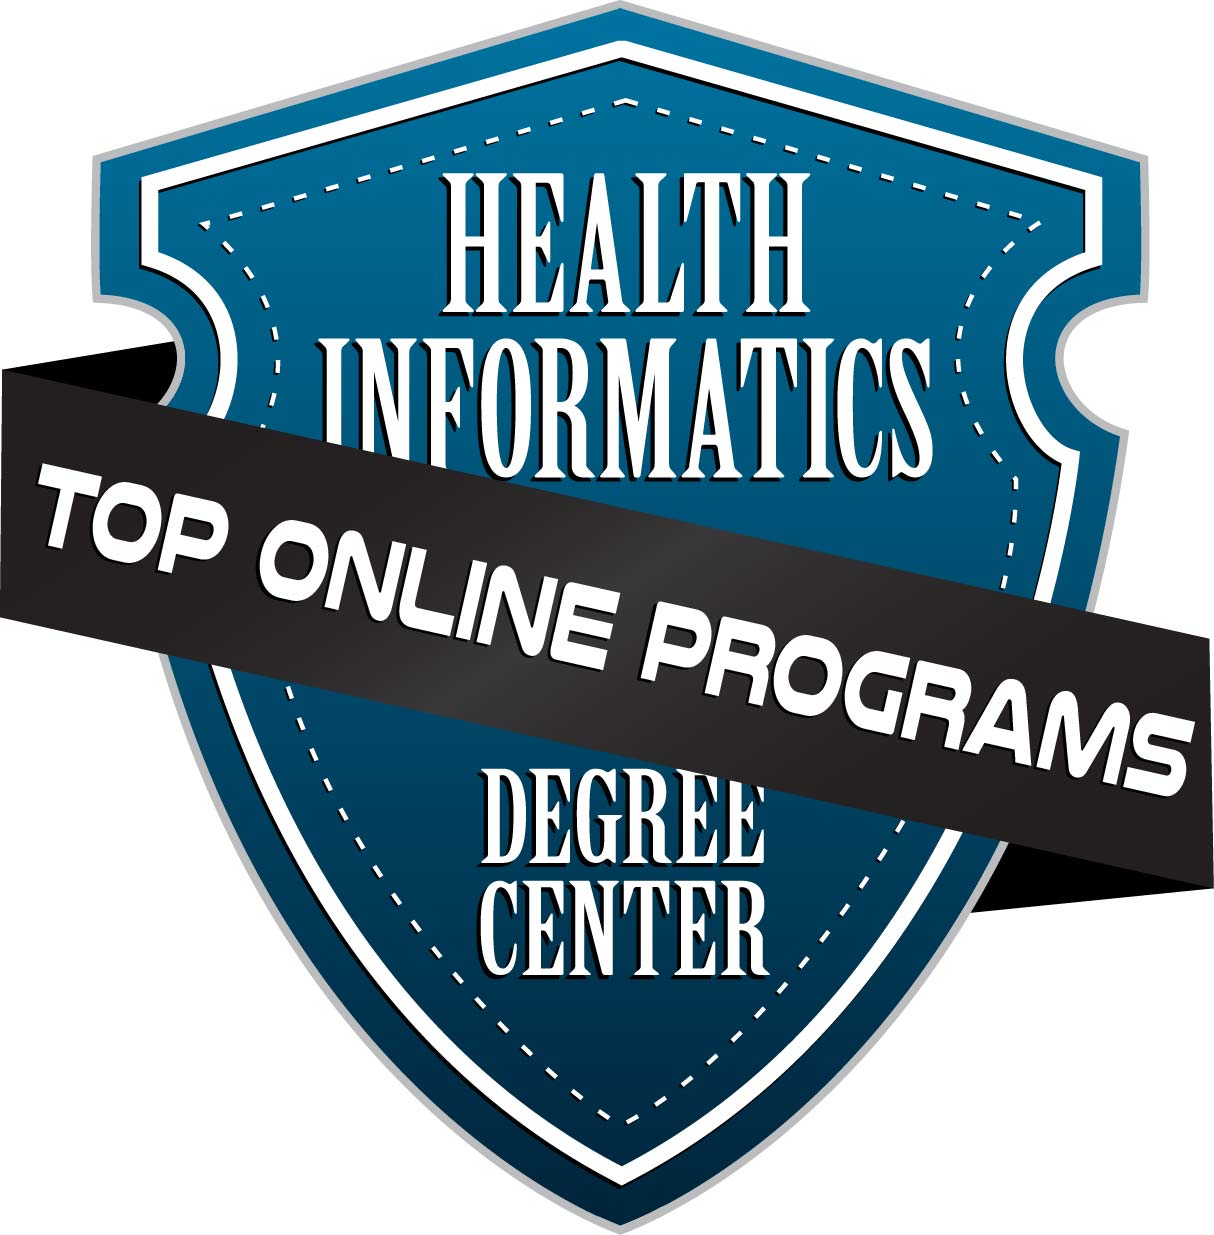 Top 10 Health Informatics Online Associates Degrees 2016